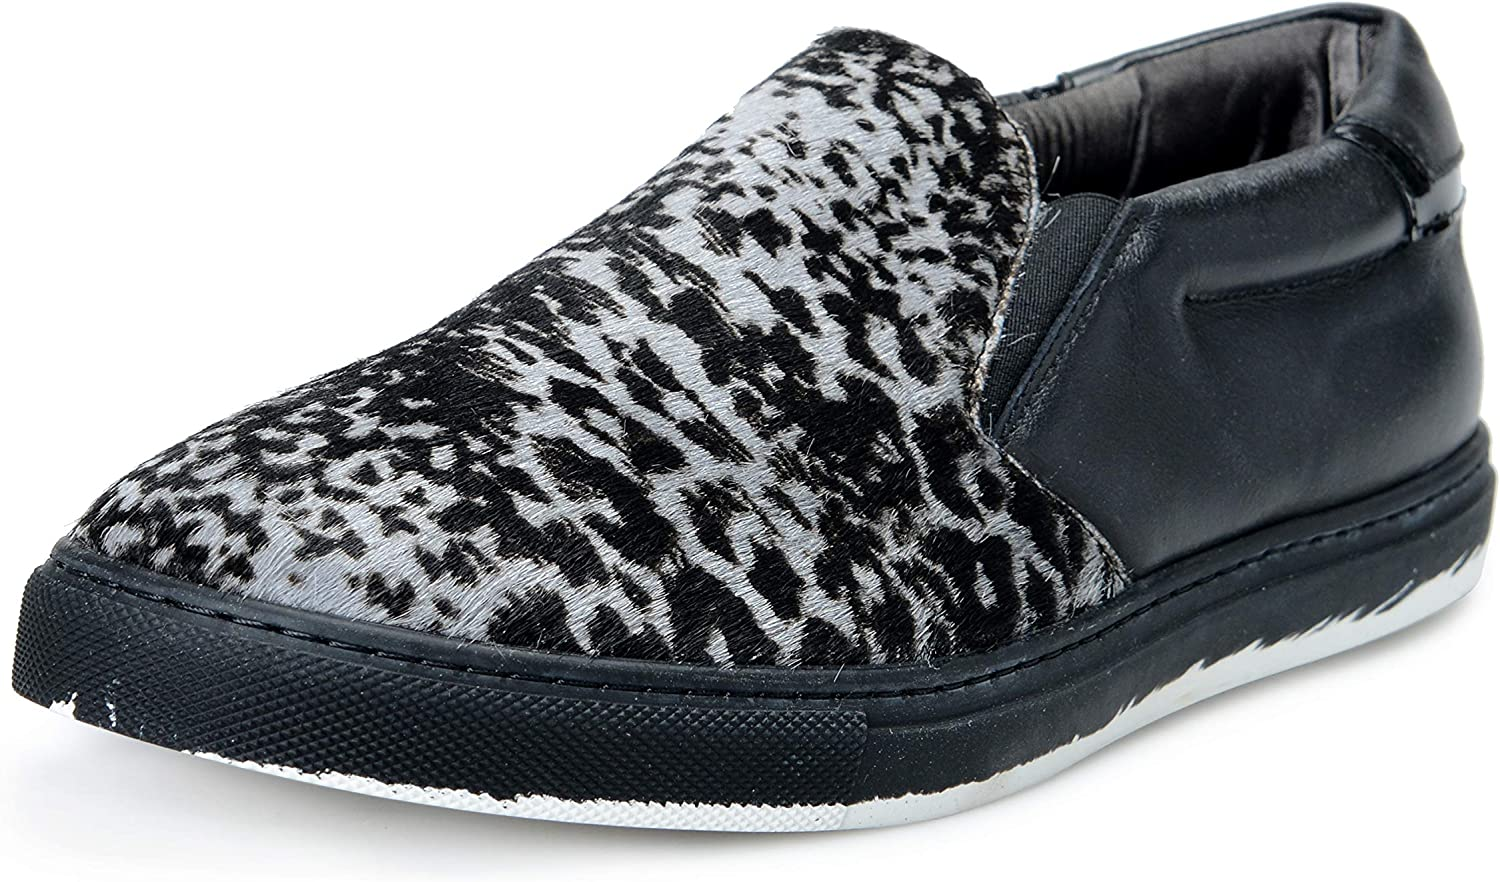 Just Cavalli Men's Pony Hair Leather Loafers Slip On Shoes US 10 IT 43